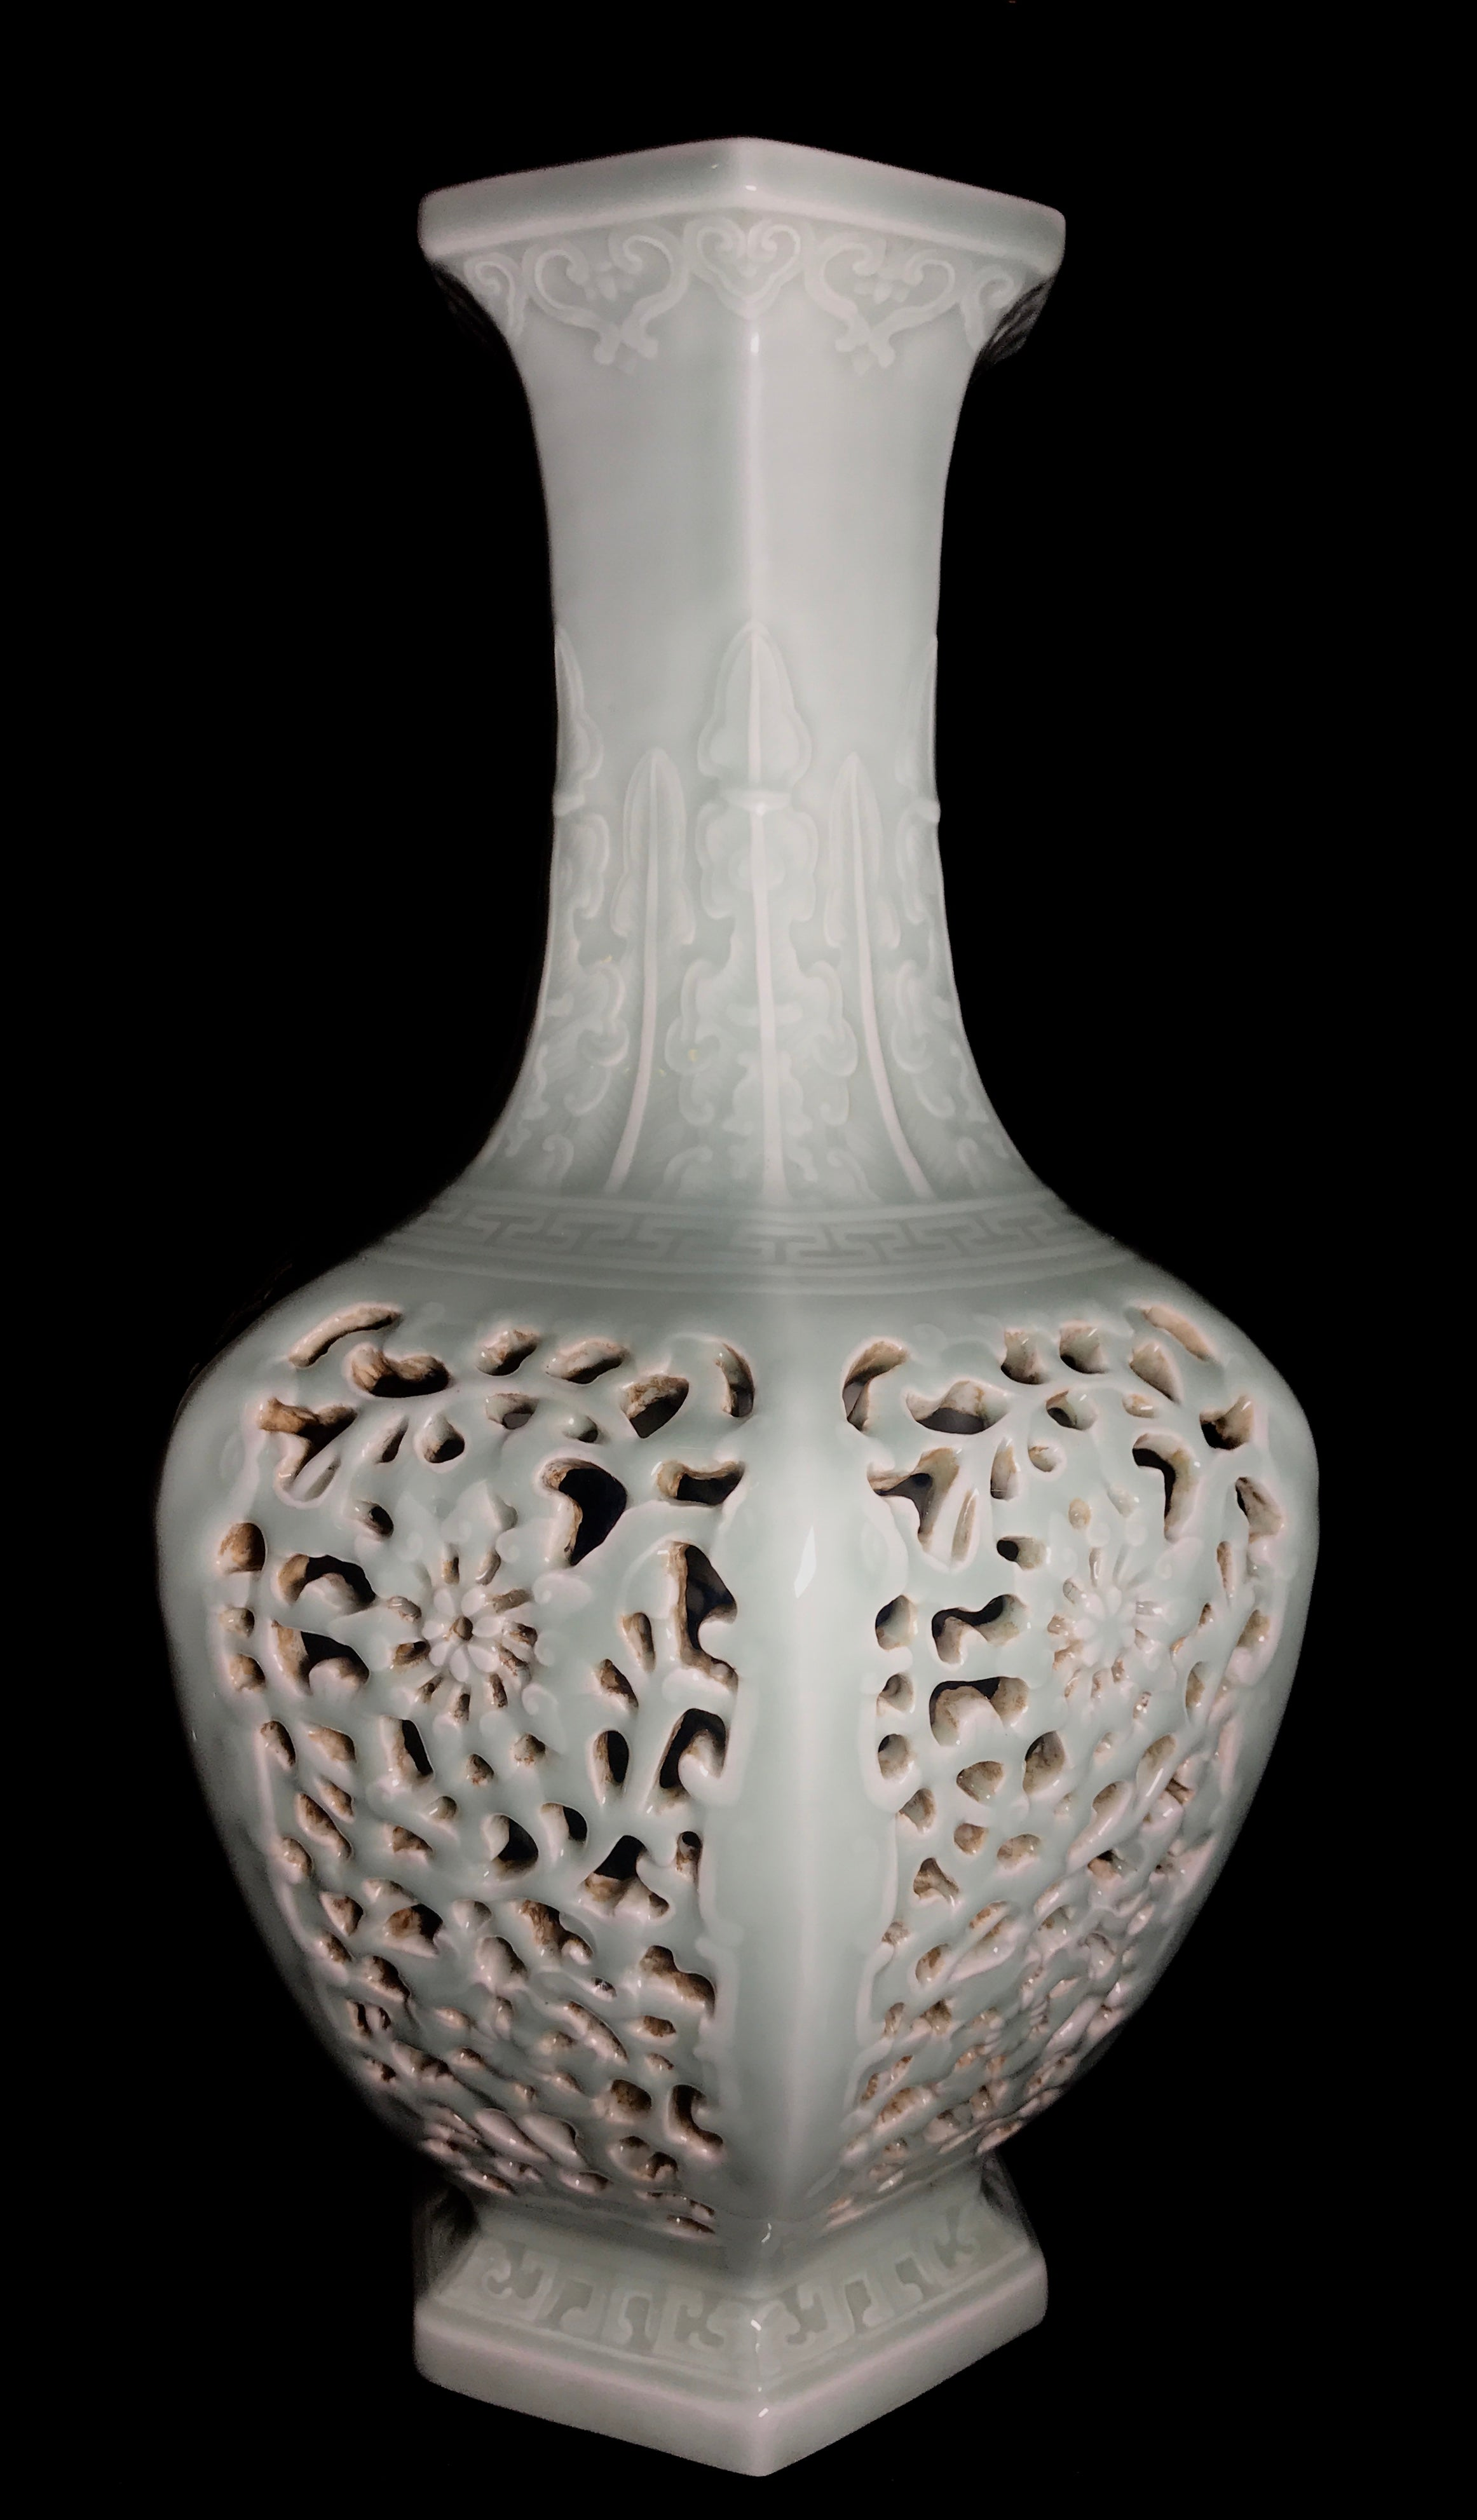 Openwork Chinese Douqing Glaze Porcelain Vase with Qianlong mark